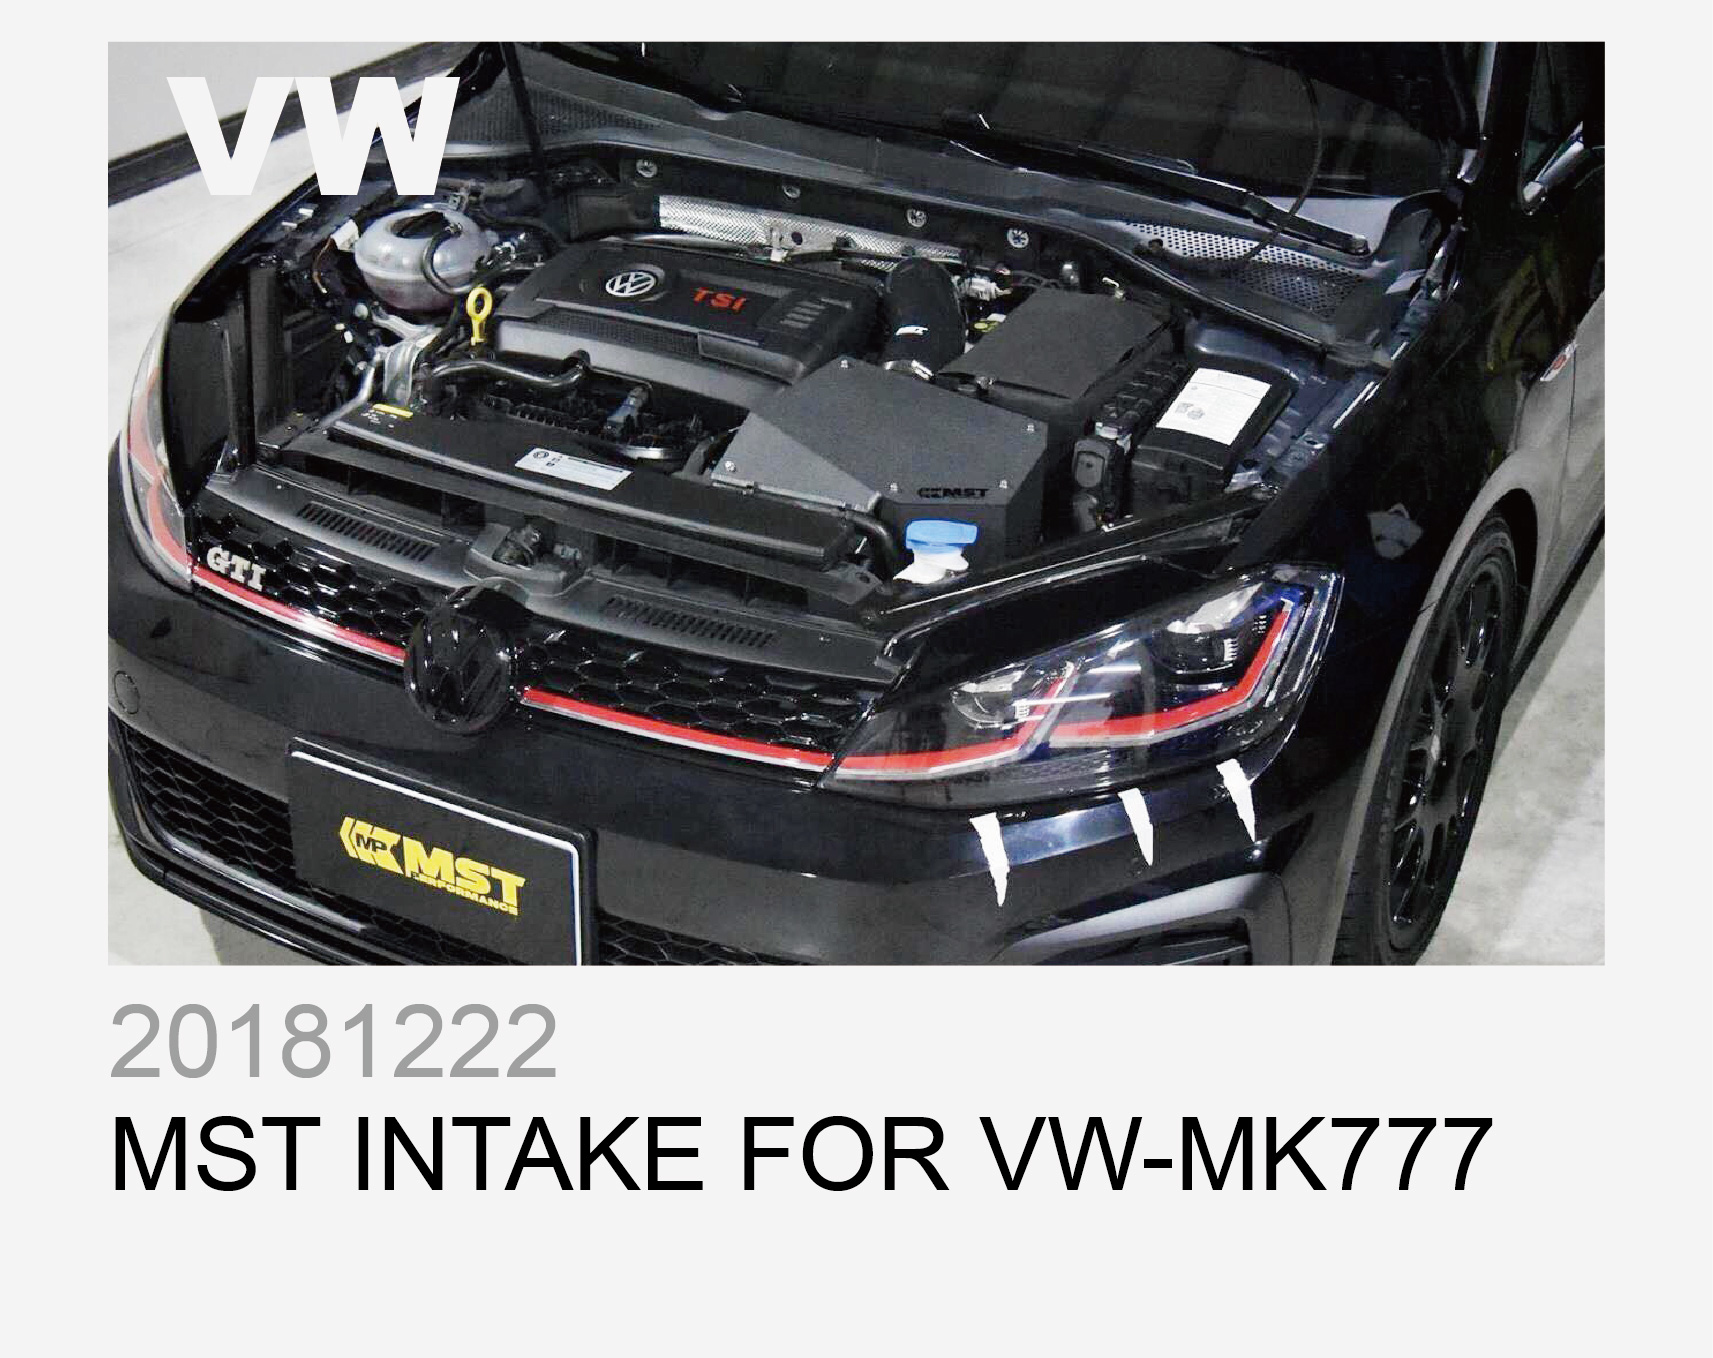 mst-intake-for-vw-mk7-gti-within-inlet